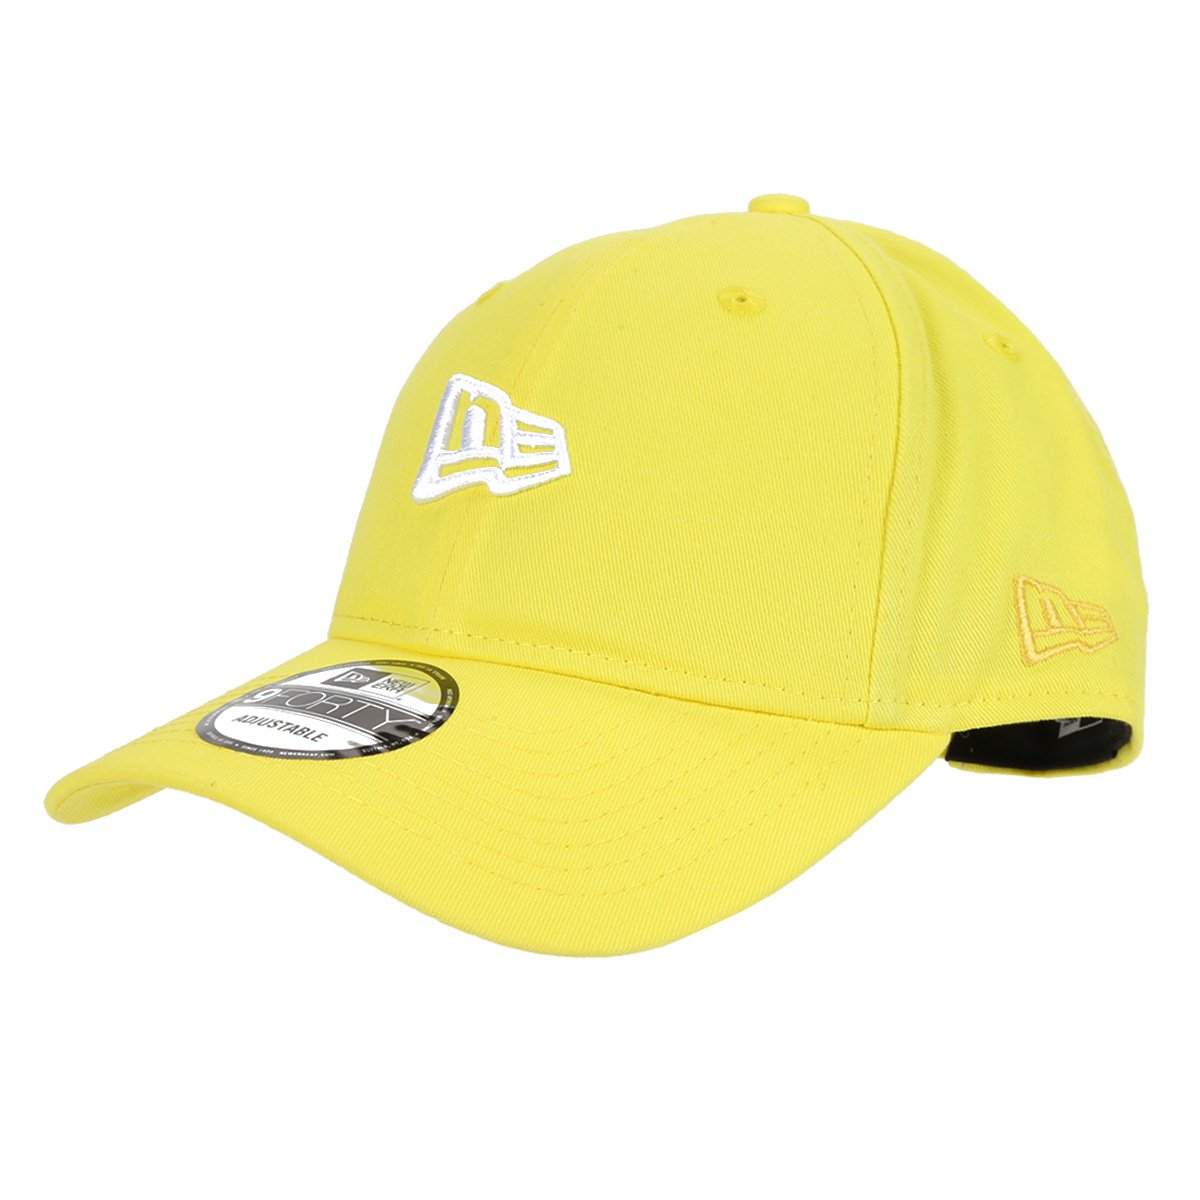 Boné New Era Aba Curva Snapback 940 SN Colors Rainbow